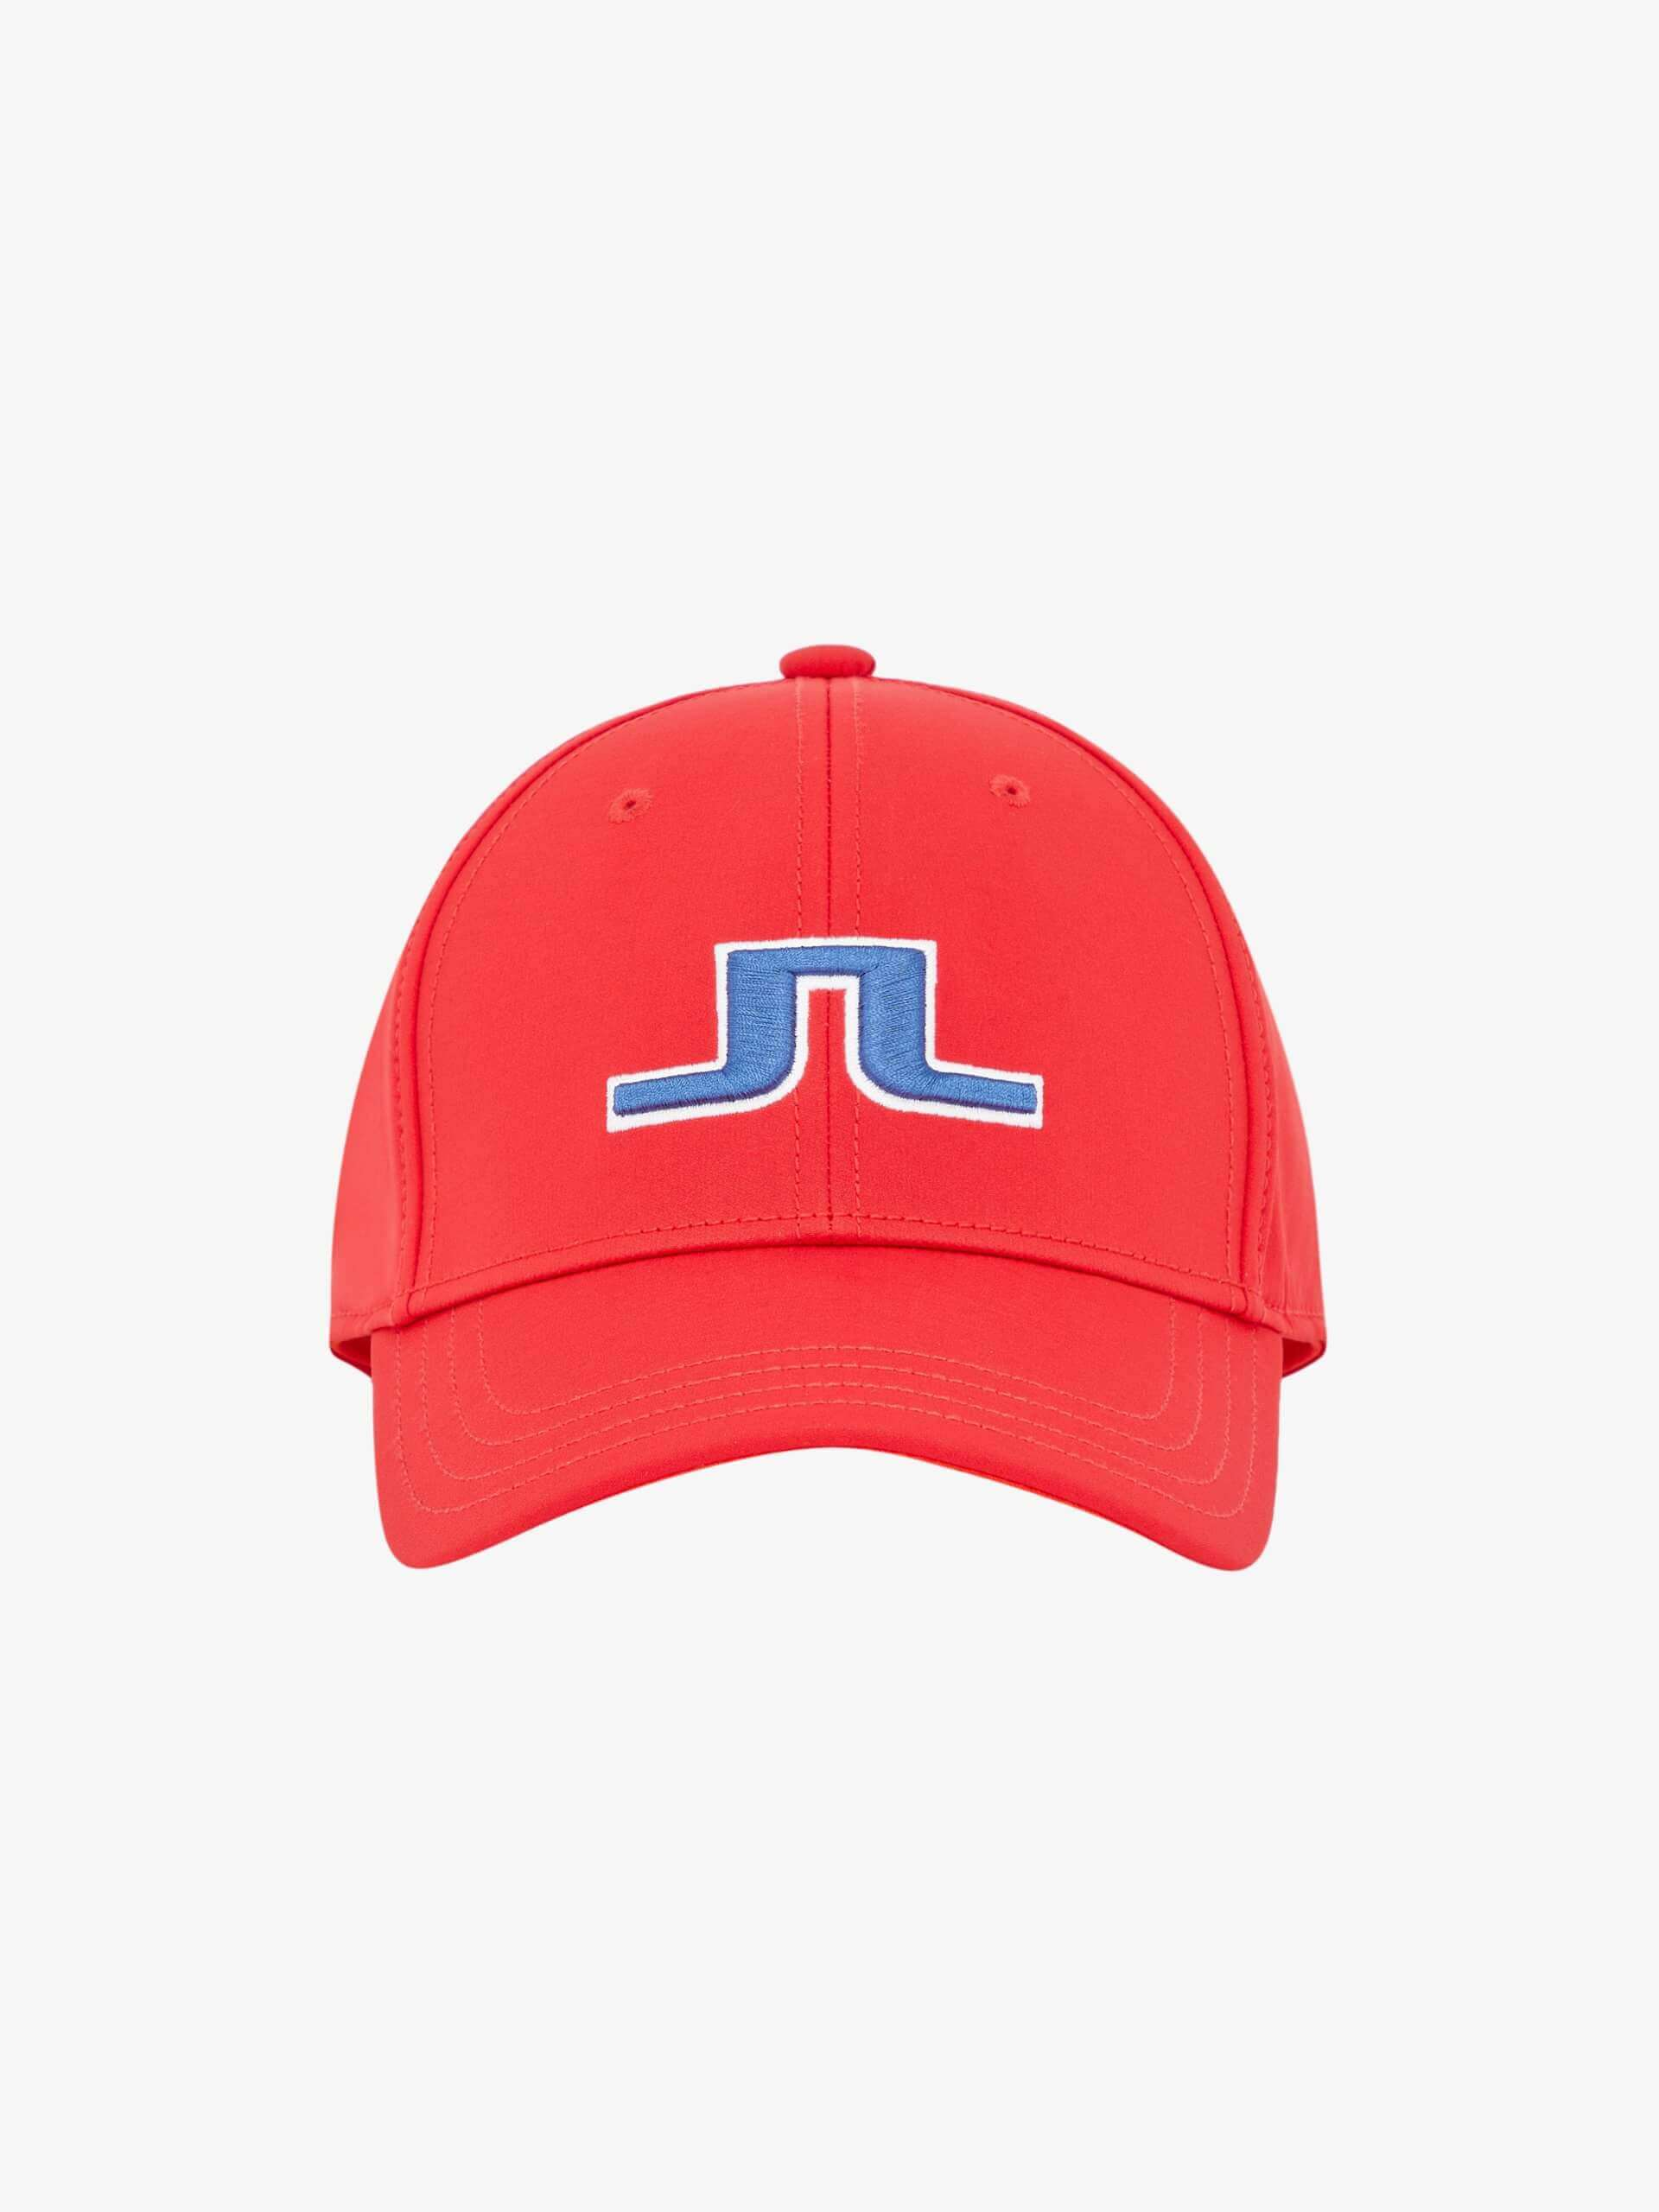 J.Lindeberg - Angus tech stretch cap in red